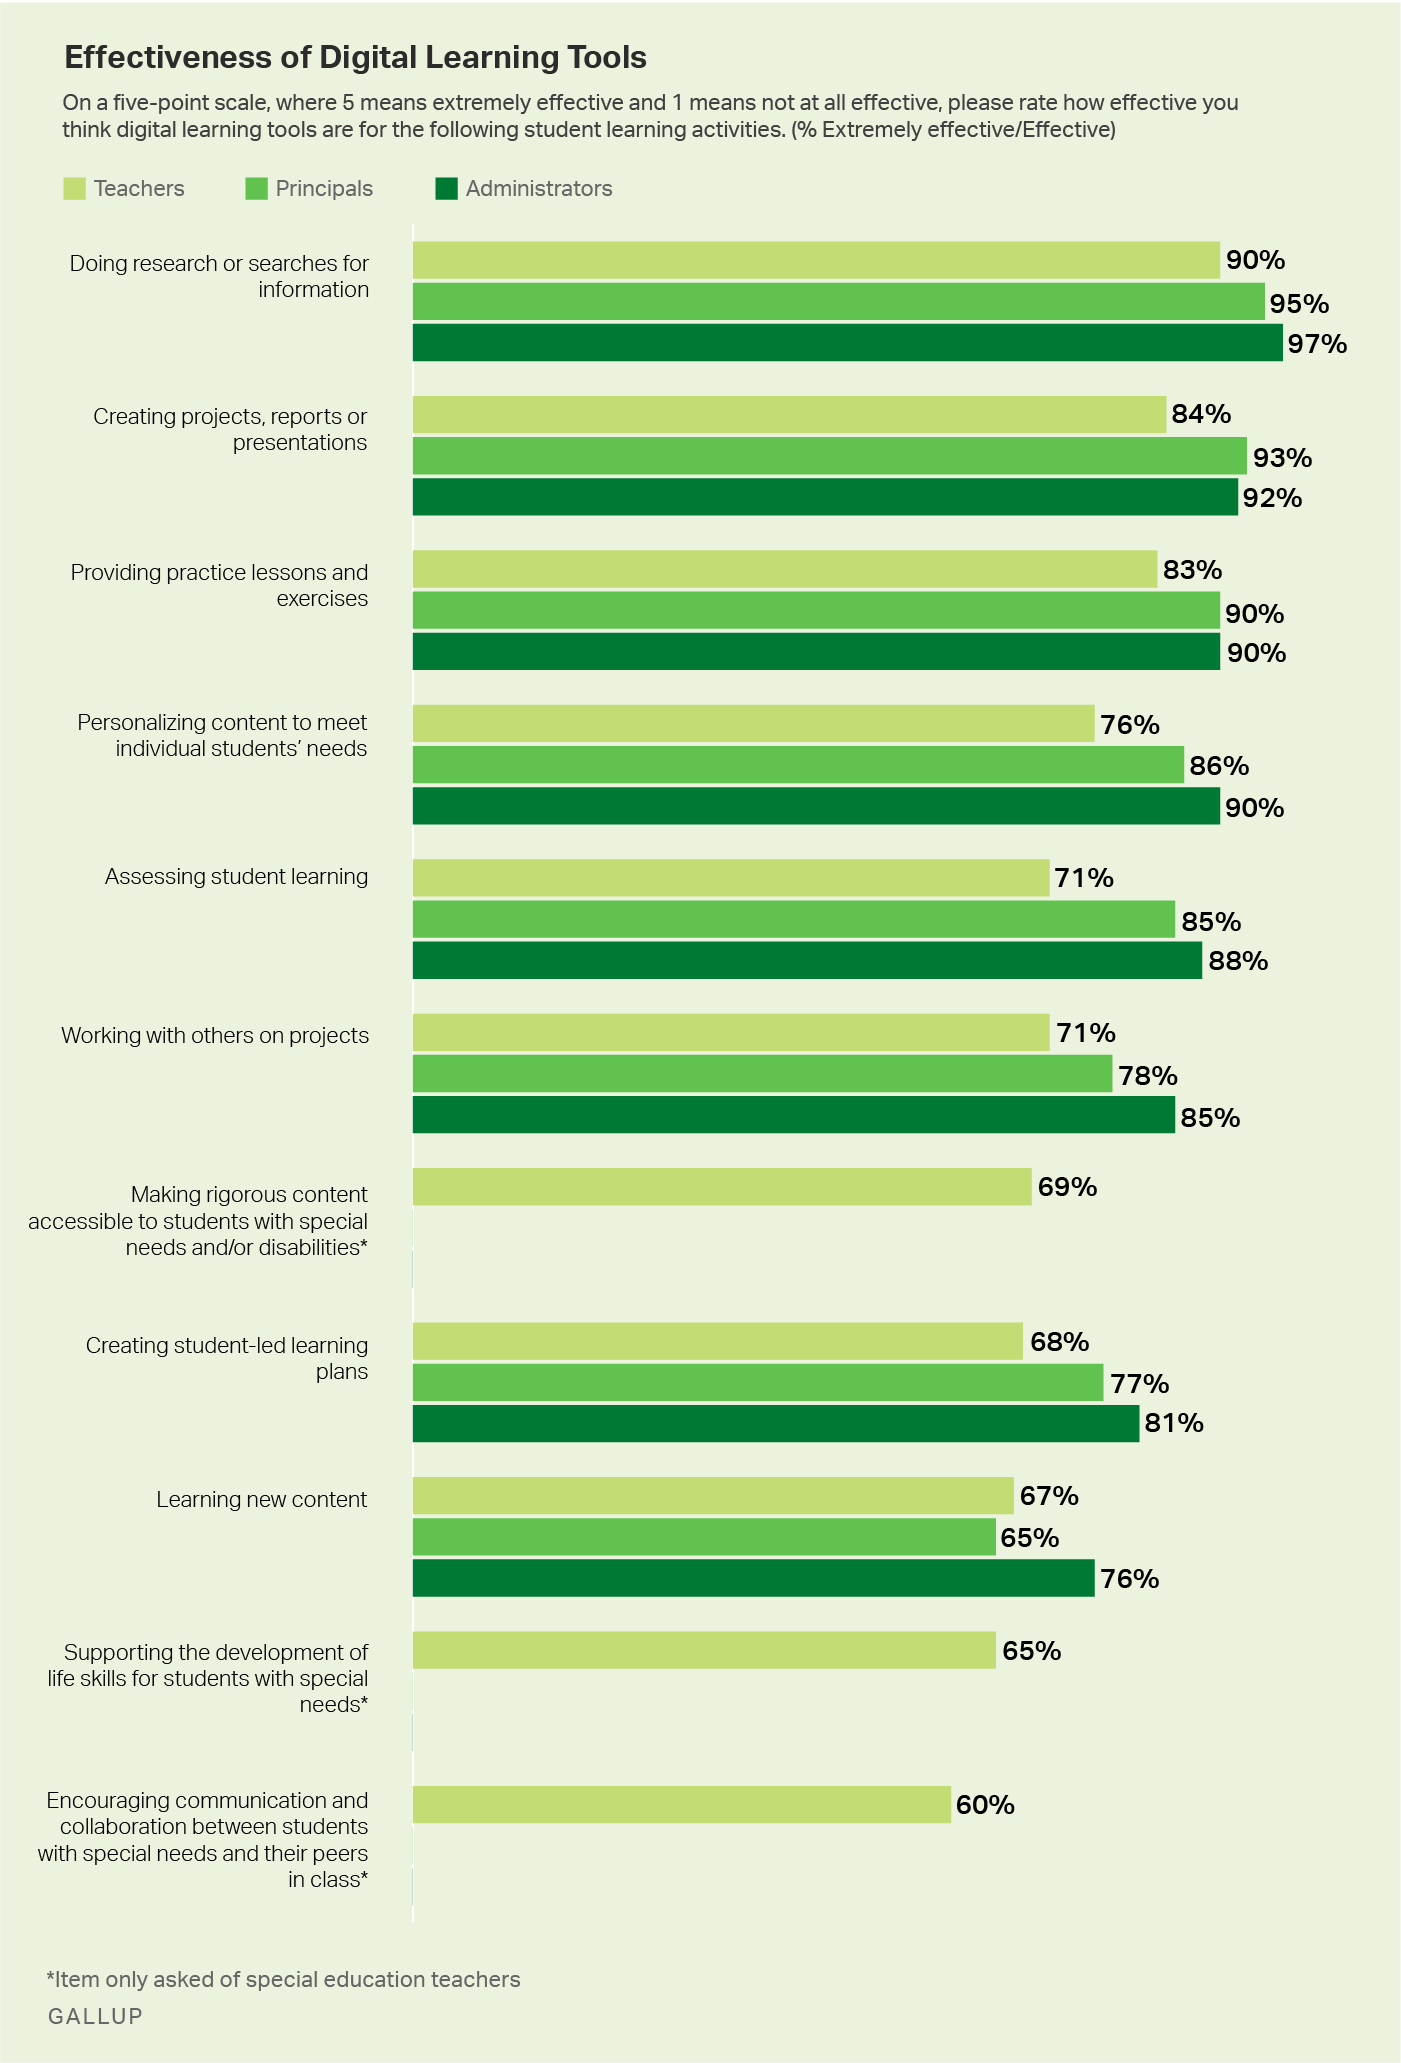 Custom graphic. Effectiveness of Digital Learning Tools among Teachers, Principals and administrators.